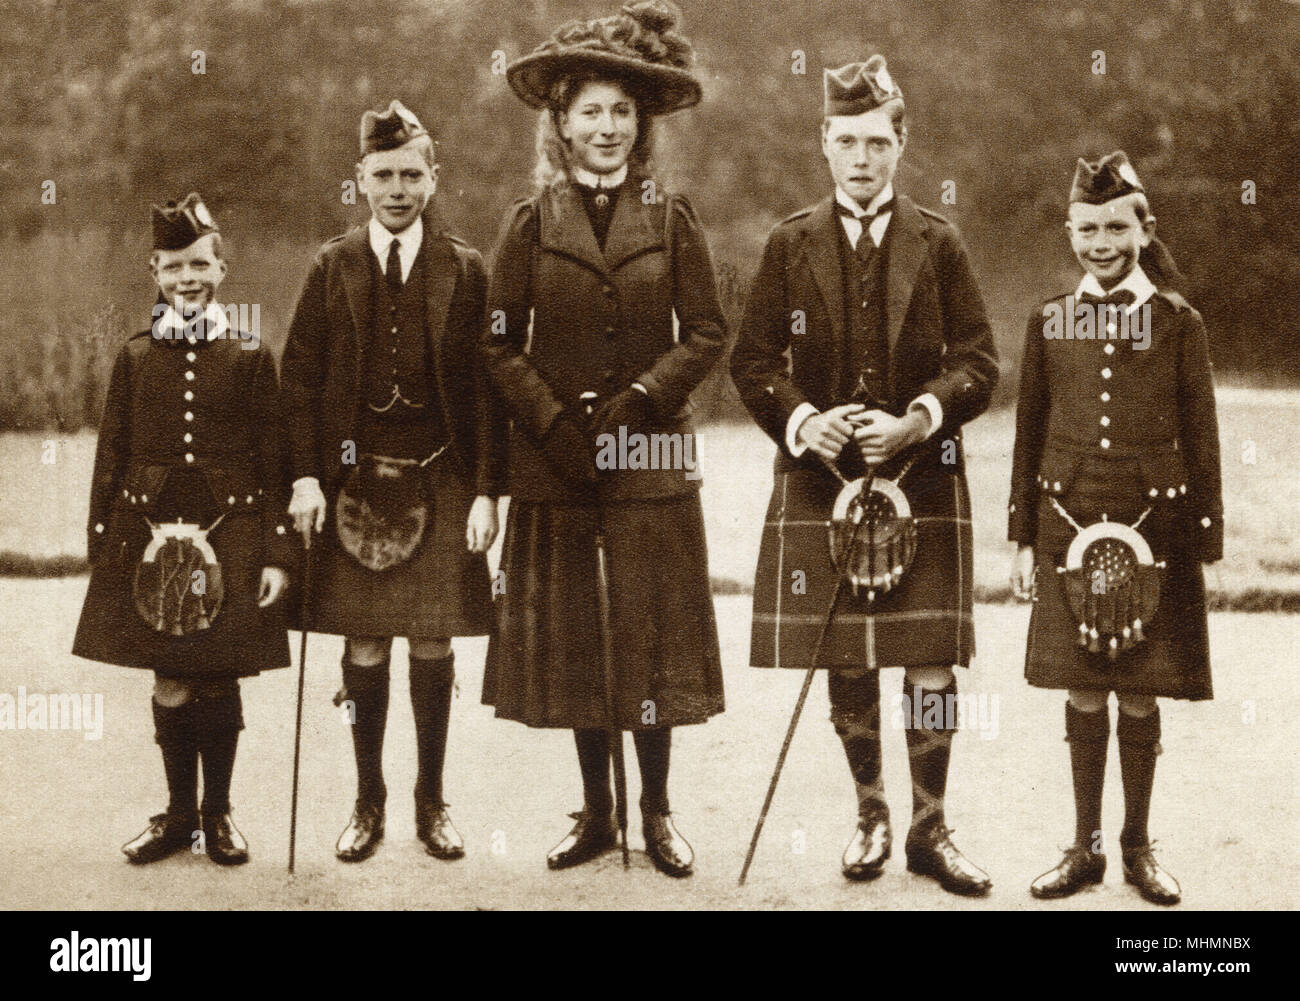 Five of the children of King George V: (from left) Prince George, Prince Albert (later King George VI) Princess Mary, Prince Edward - Prince of Wales (later King Edward VIII), and Prince Henry, Duke of Gloucester. Photograph likely to have been taken at the Royal residence of Balmoral in Scotland.     Date: 1911 Stock Photo